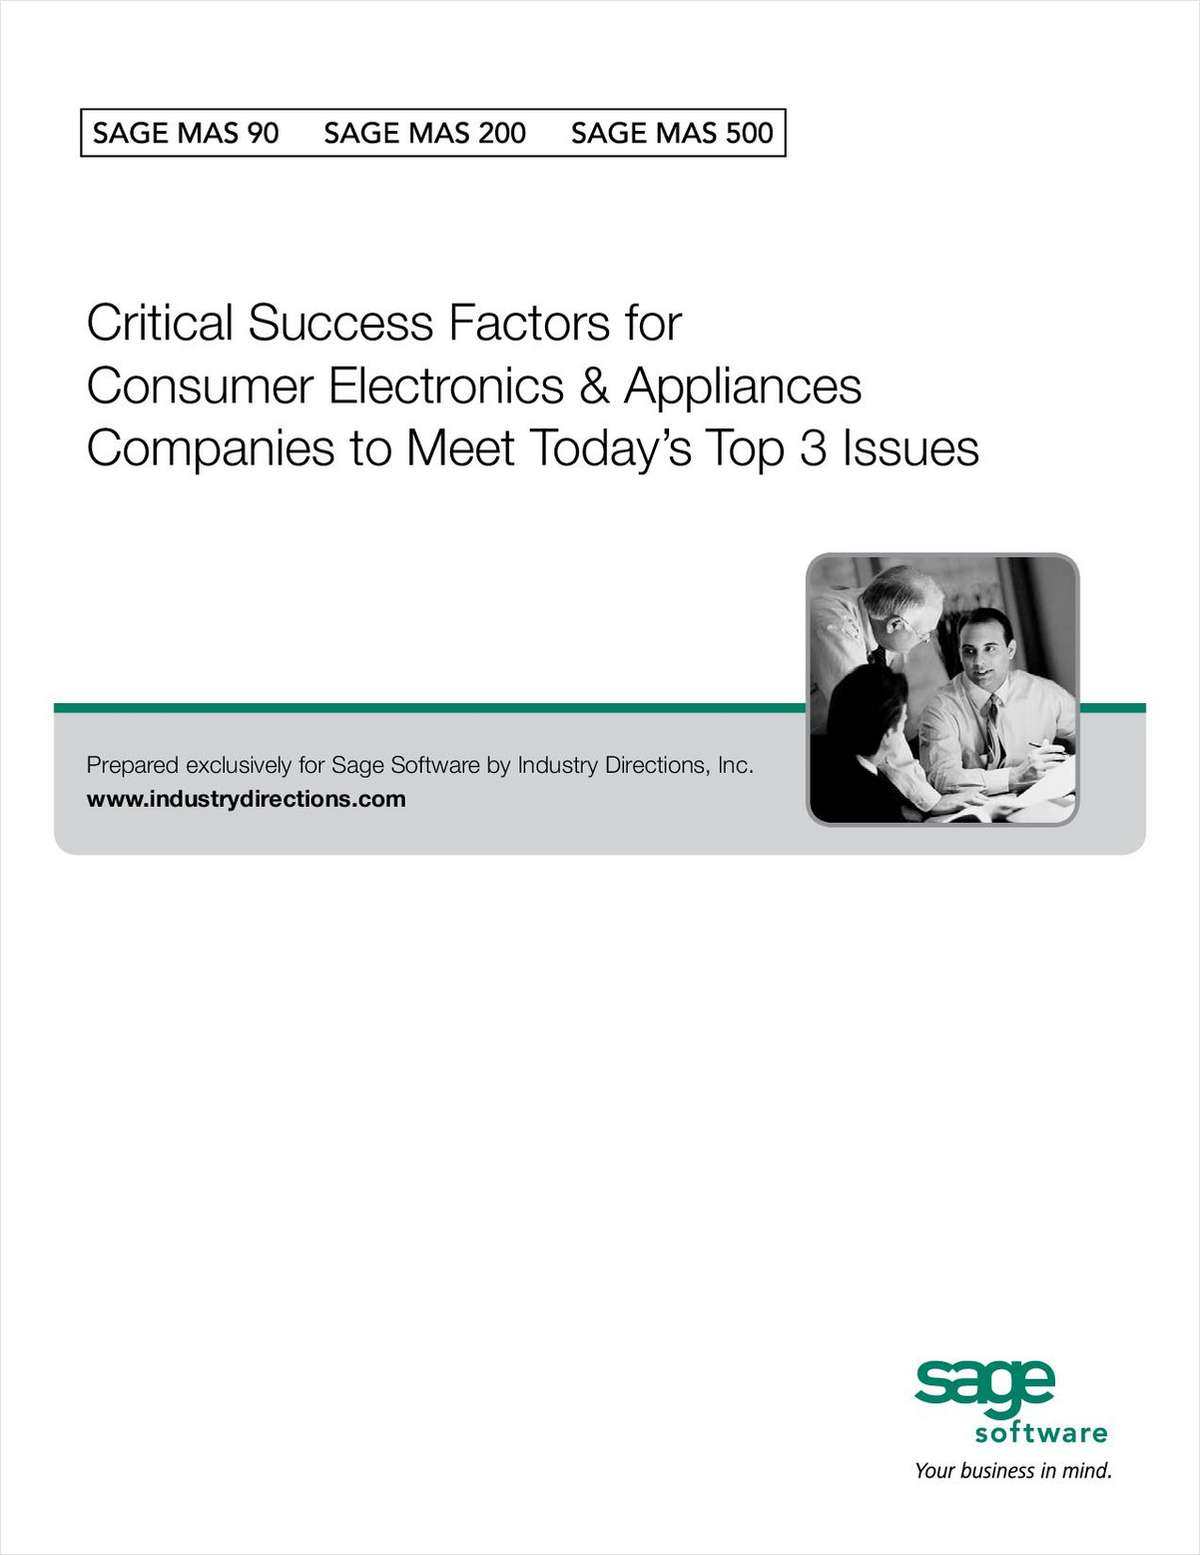 Critical Success Factors for Consumer Electronics & Appliance Companies to Meet Today's Top 3 Issues